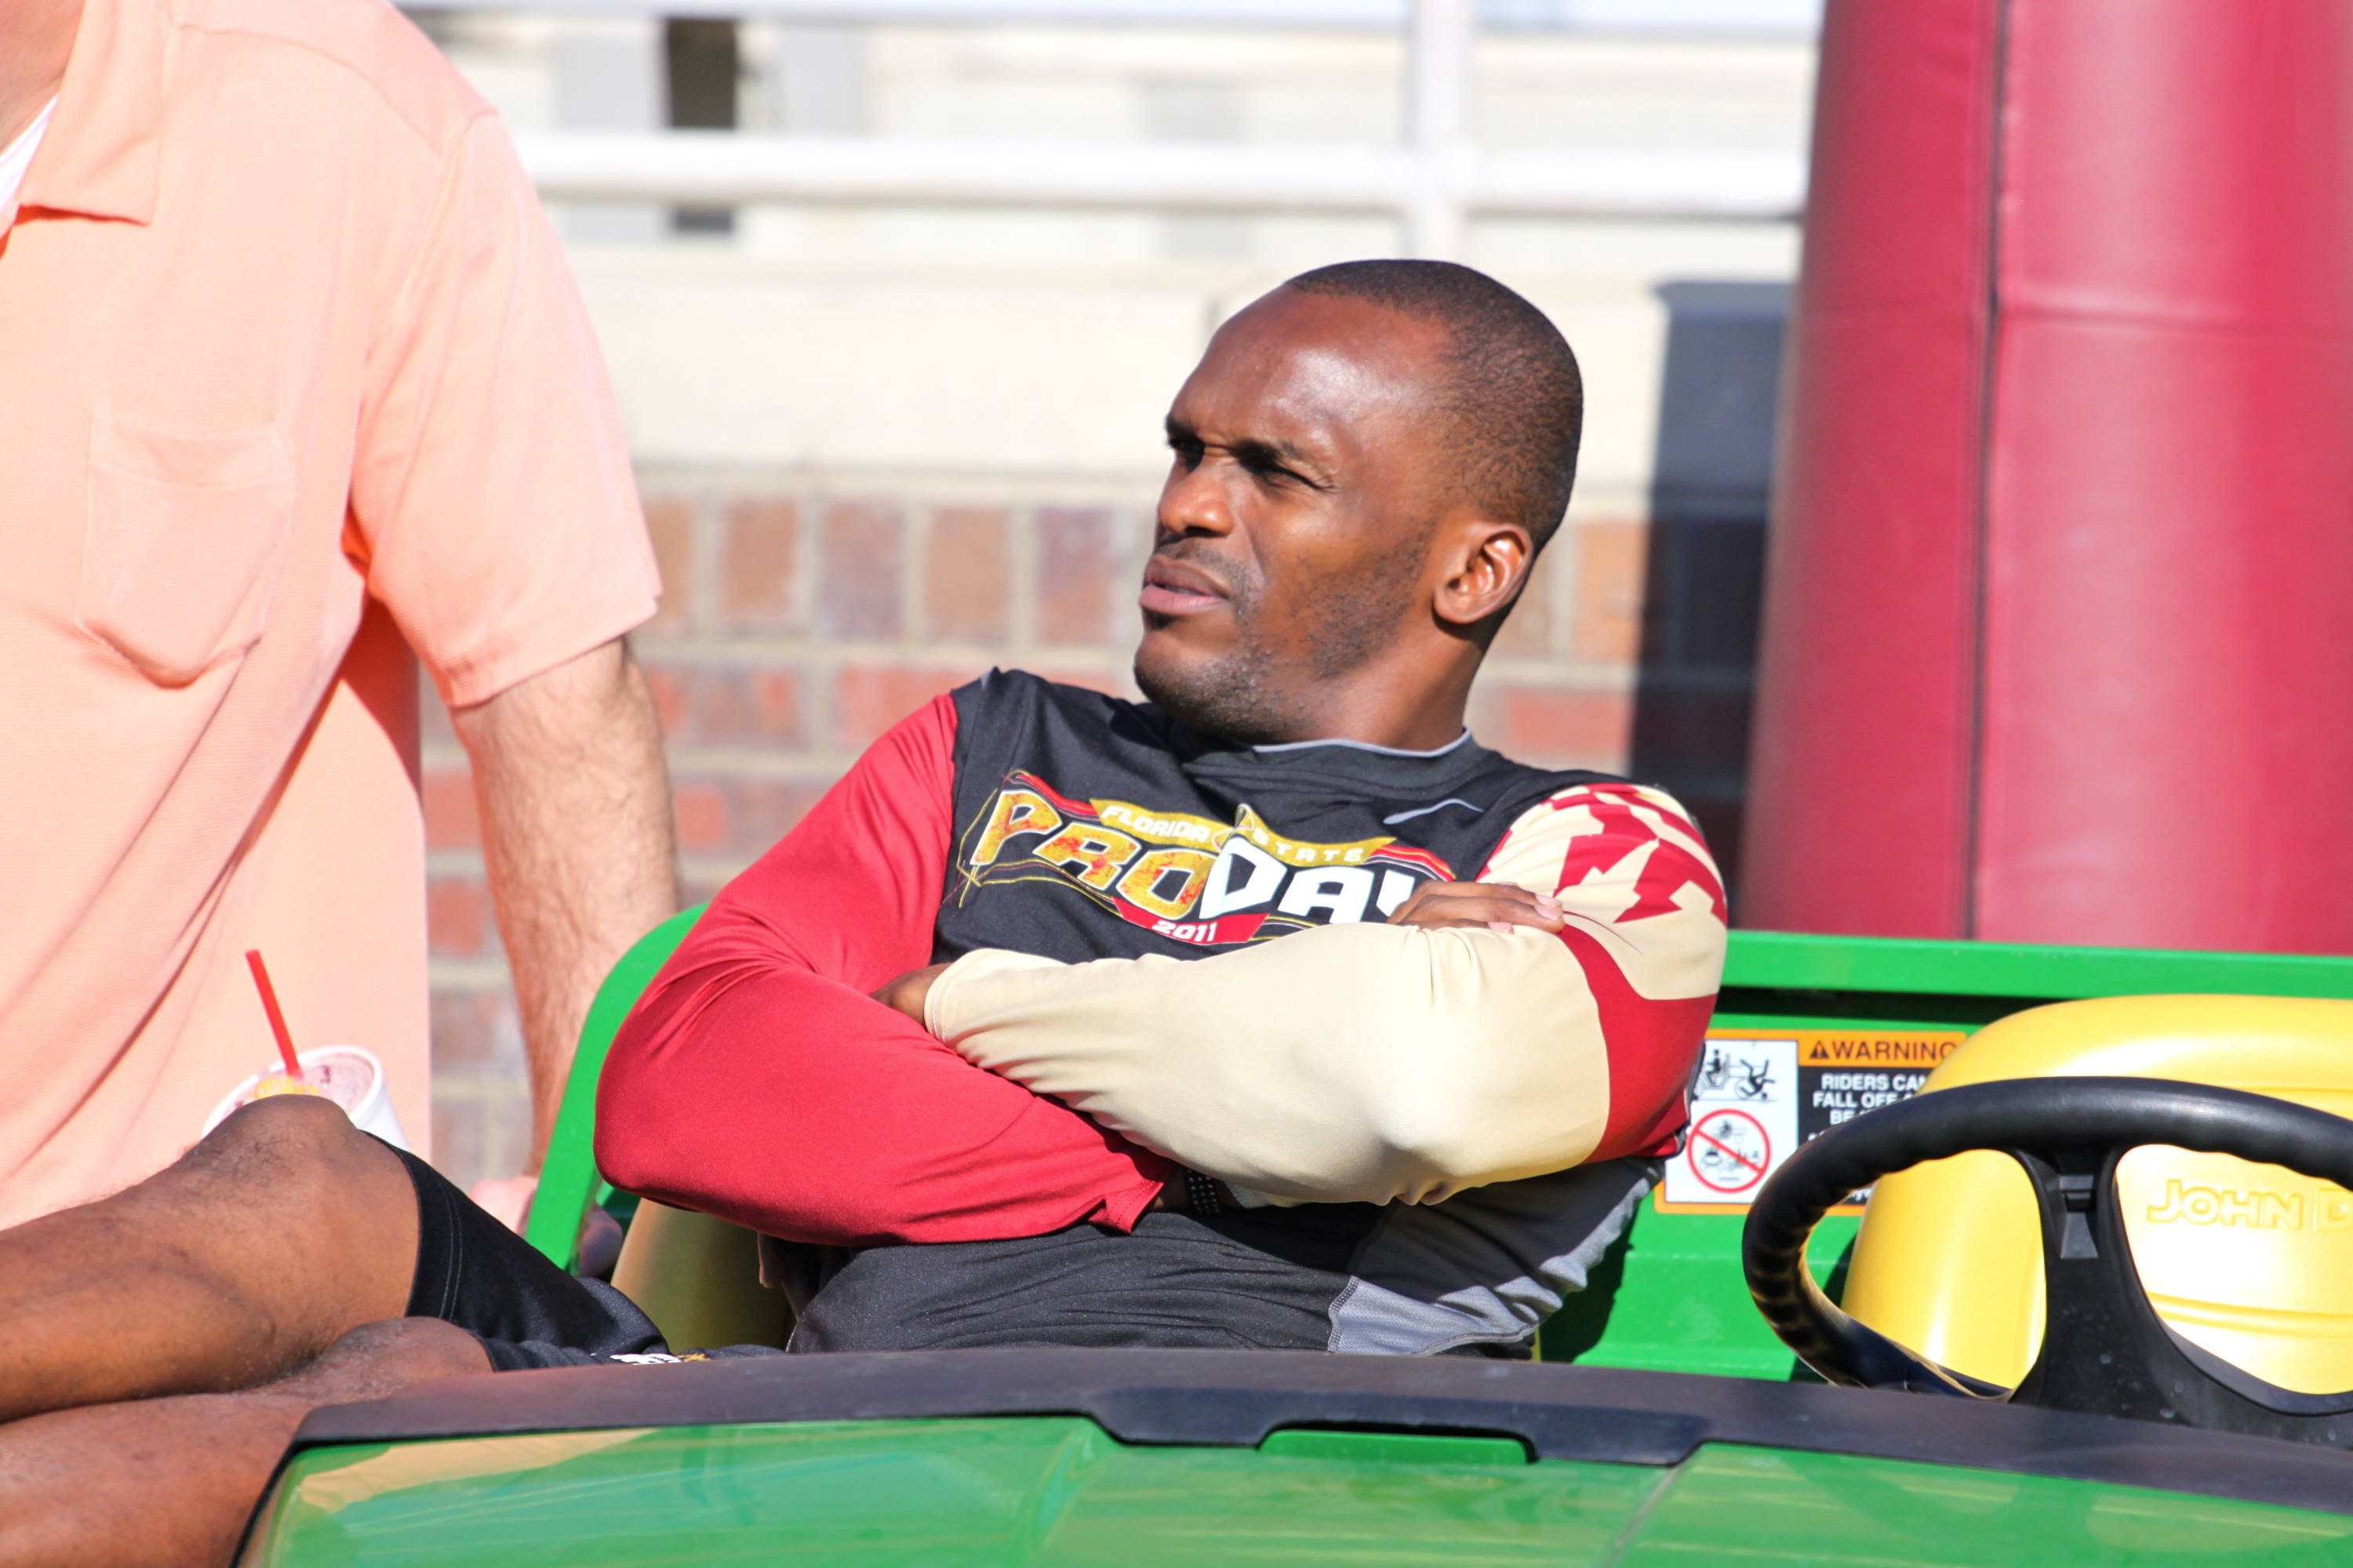 Former St. Louis Rams wide receiver Isaac Bruce